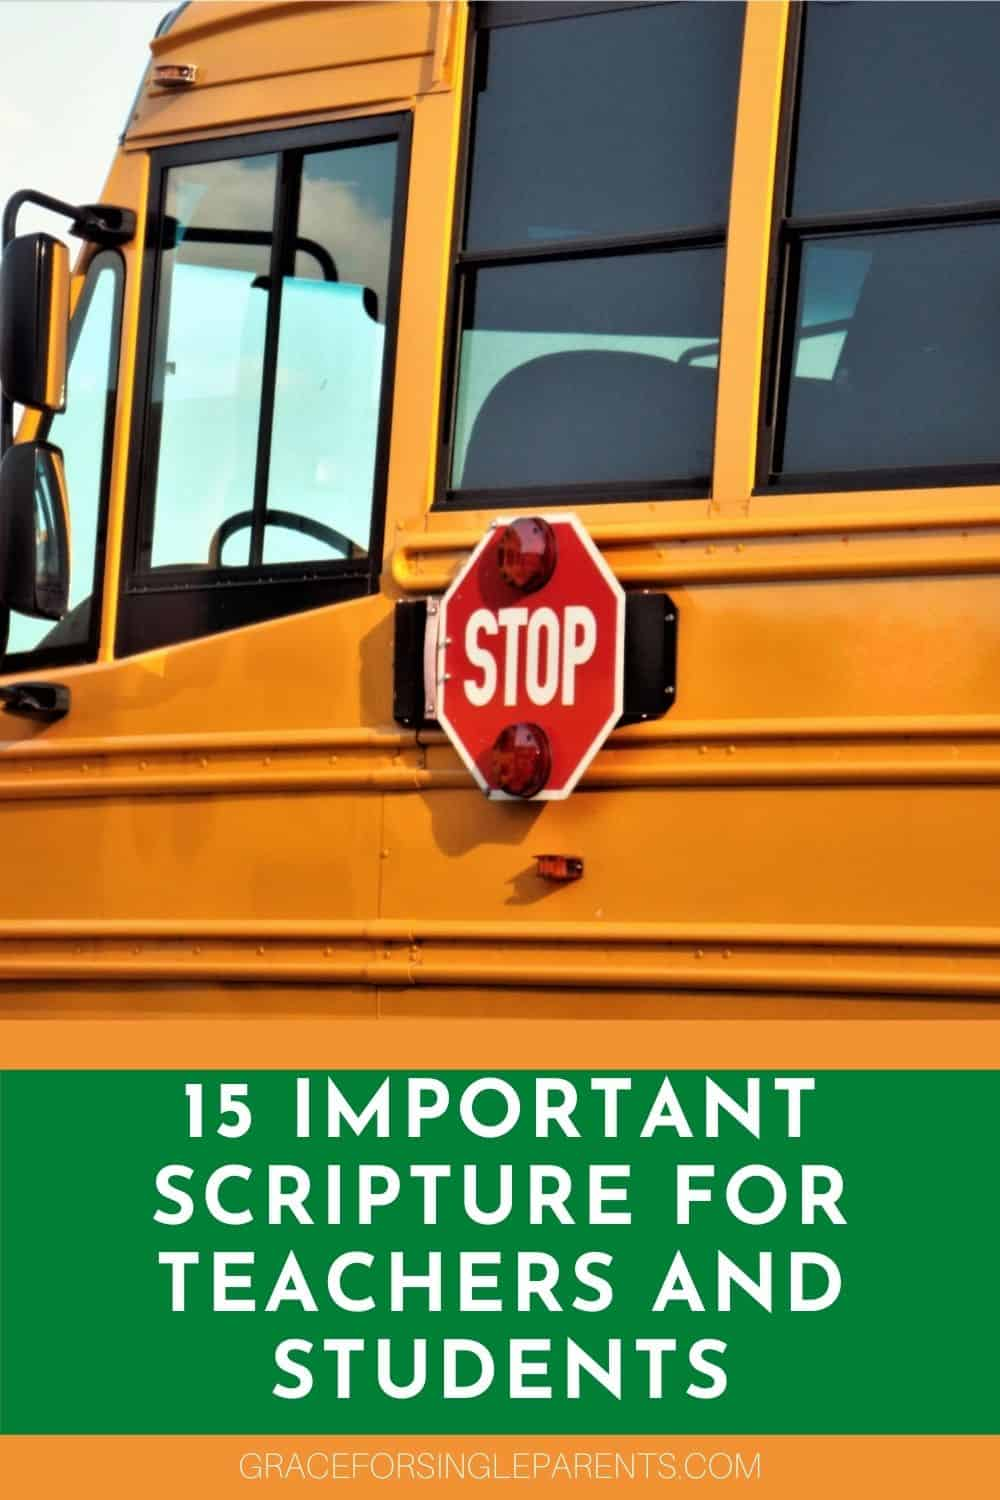 15 Bible Verses You Need for Back to School